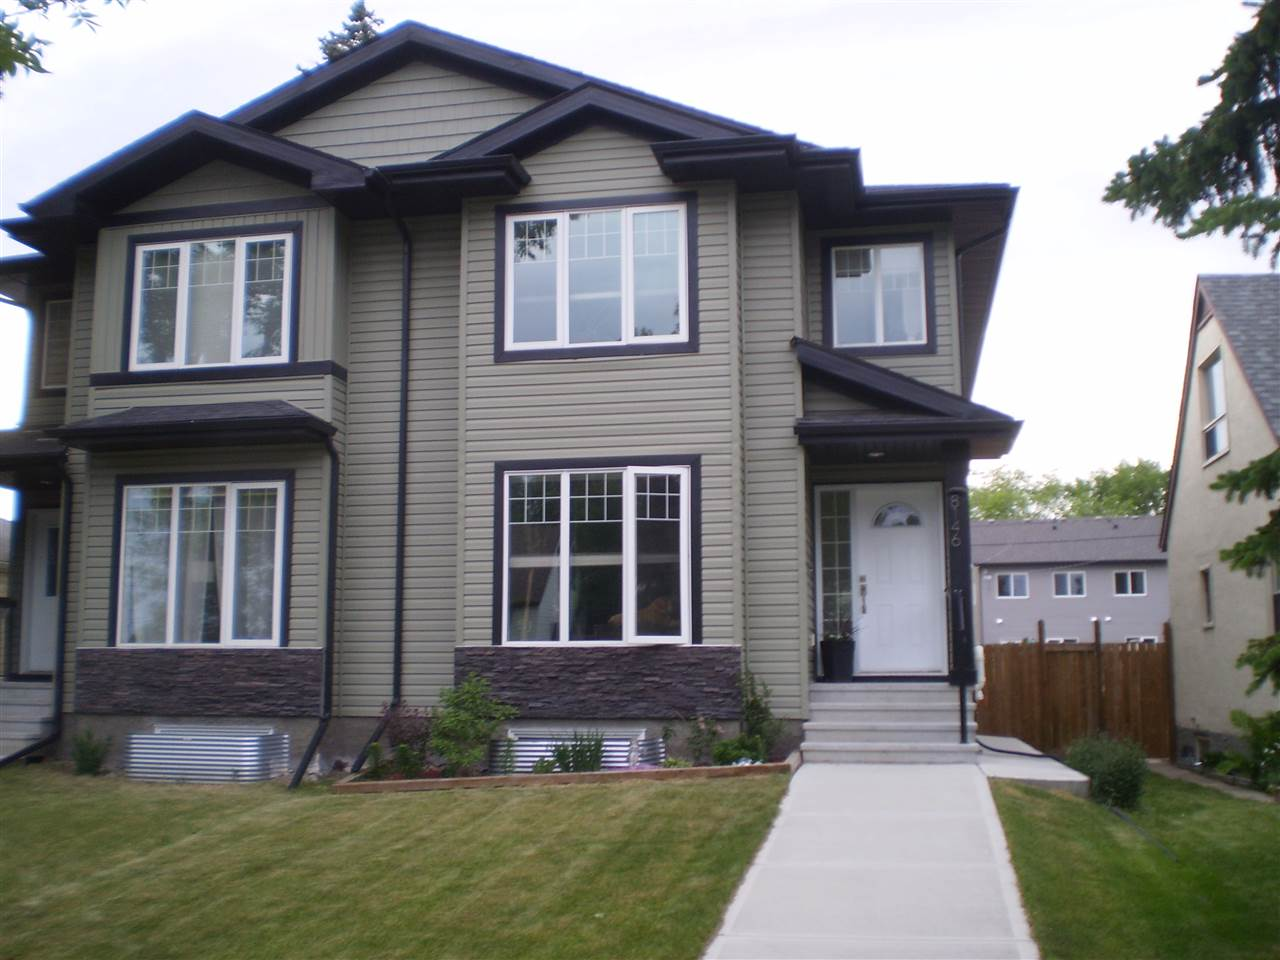 Main Photo: 8146 77 Avenue in Edmonton: Zone 17 House Half Duplex for sale : MLS(r) # E4068287